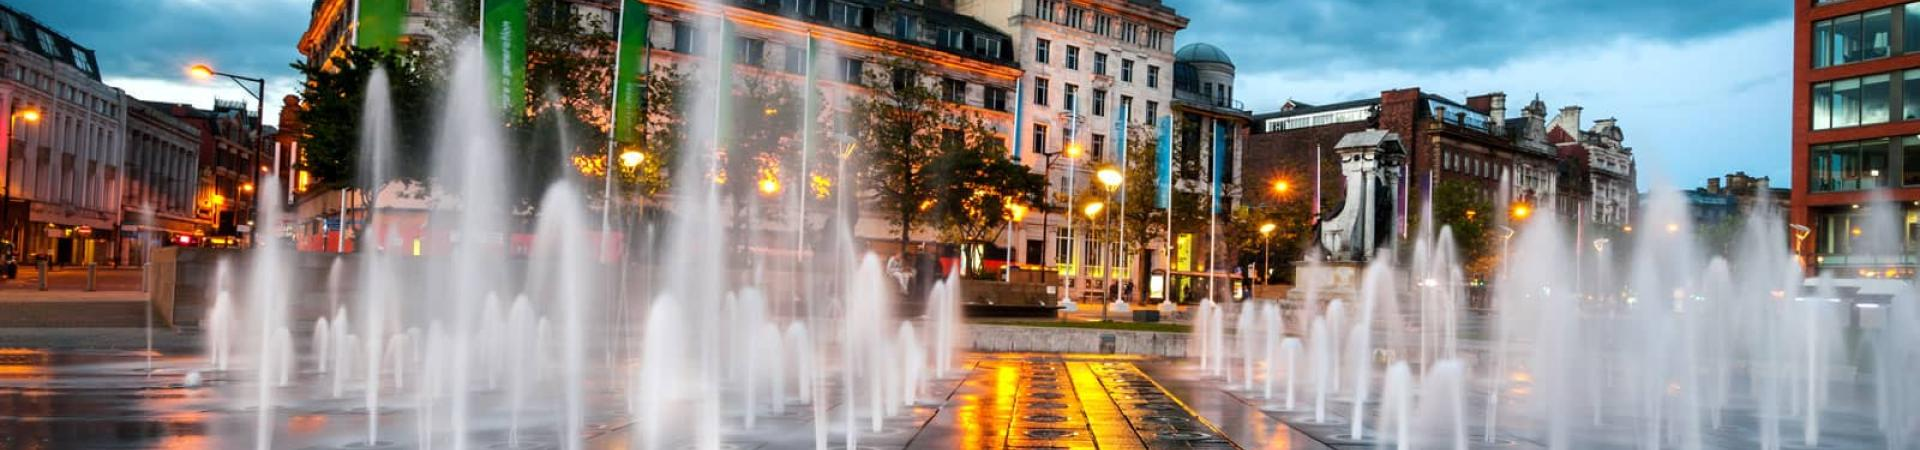 banner image of Piccadilly Square, Manchester